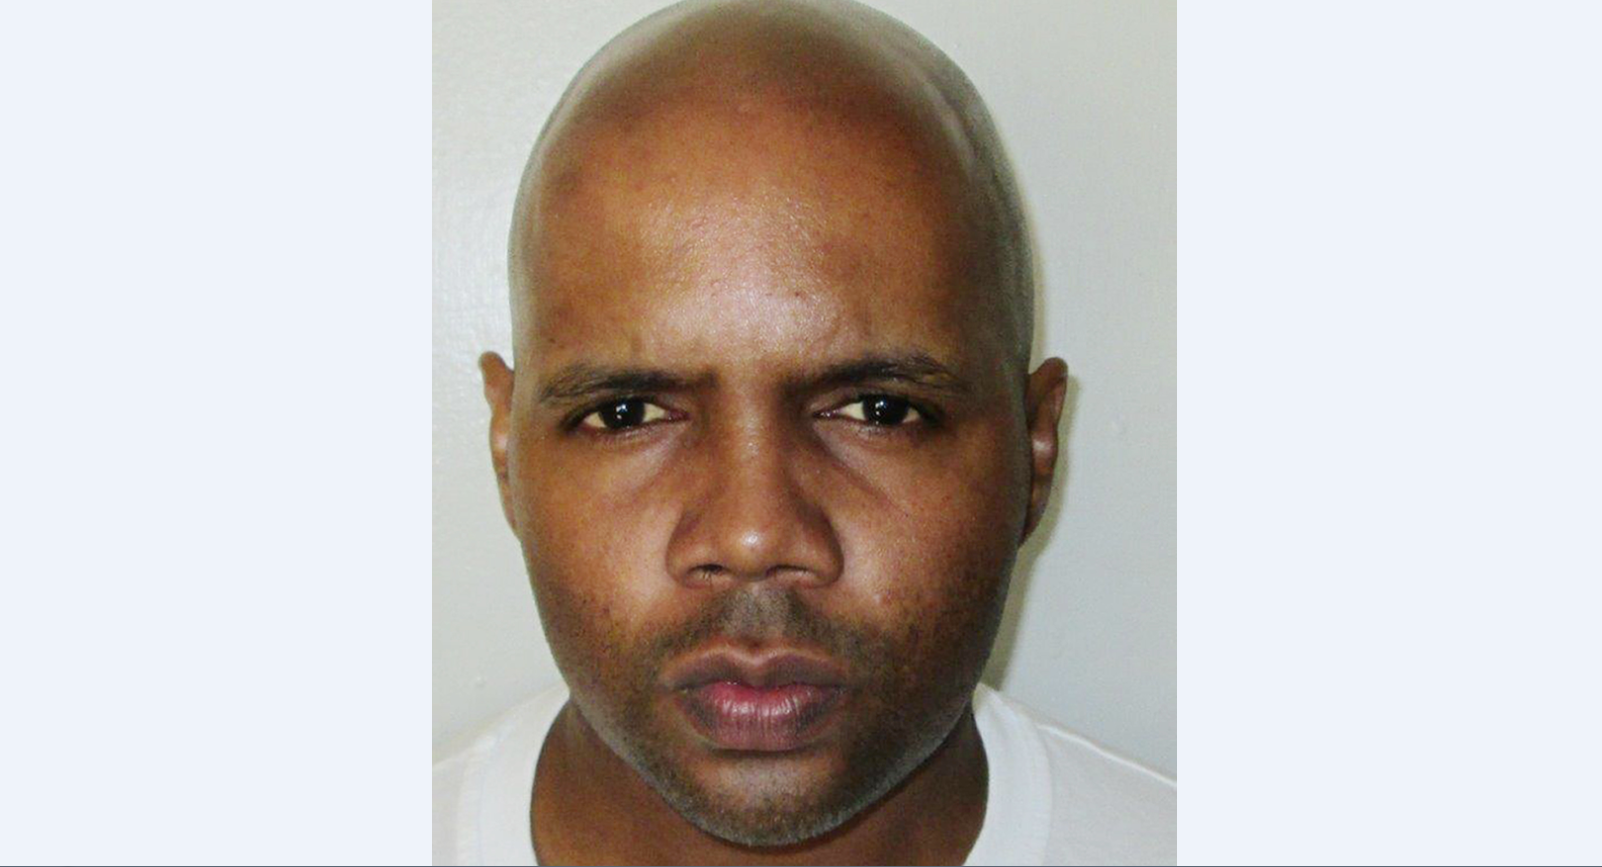 Alabama executes man convicted of killing police officer in 1997